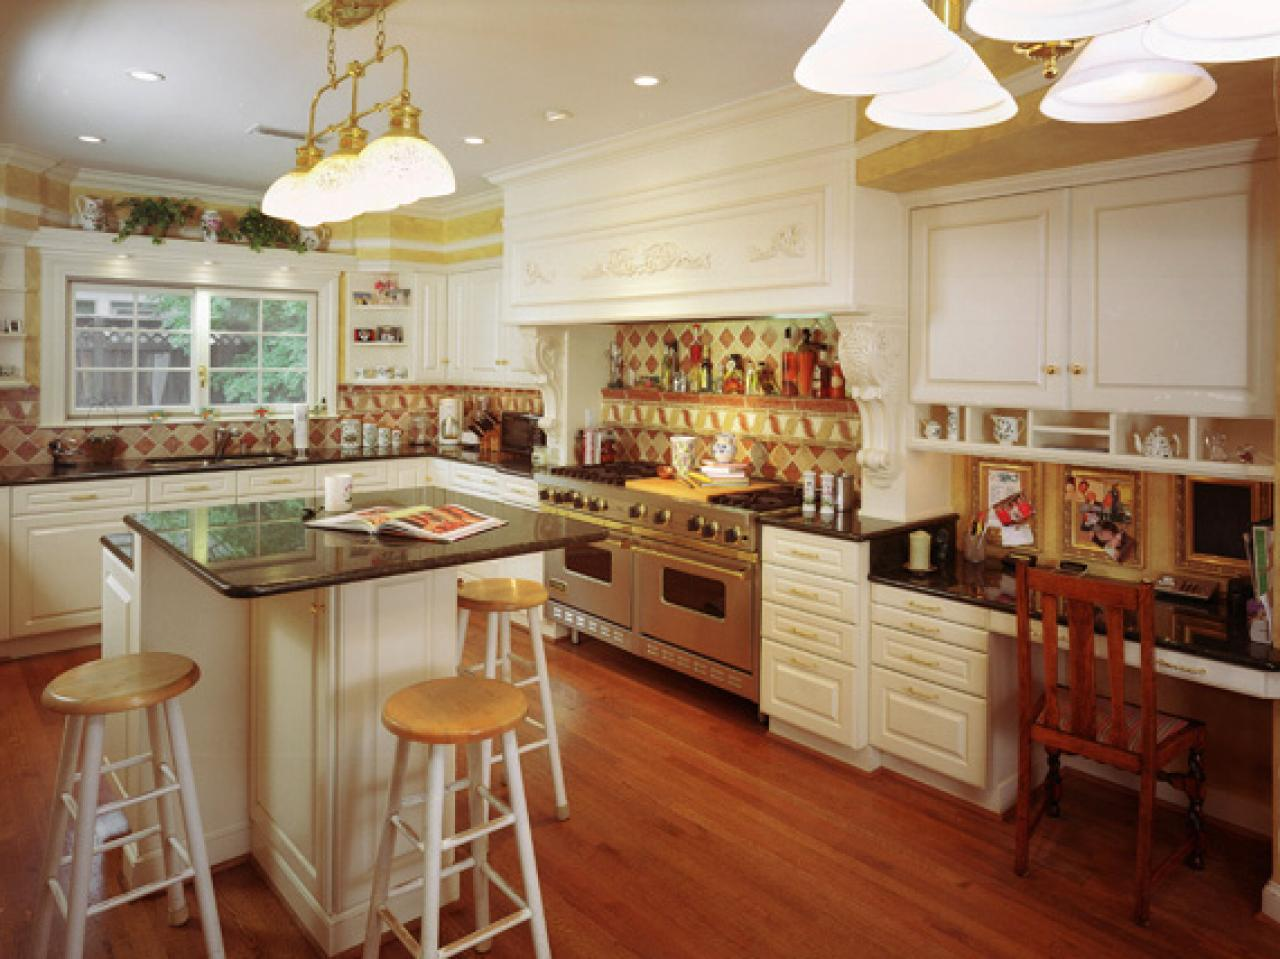 Quick tips for keeping an organized kitchen kitchen for Ideas organizing kitchen cabinets